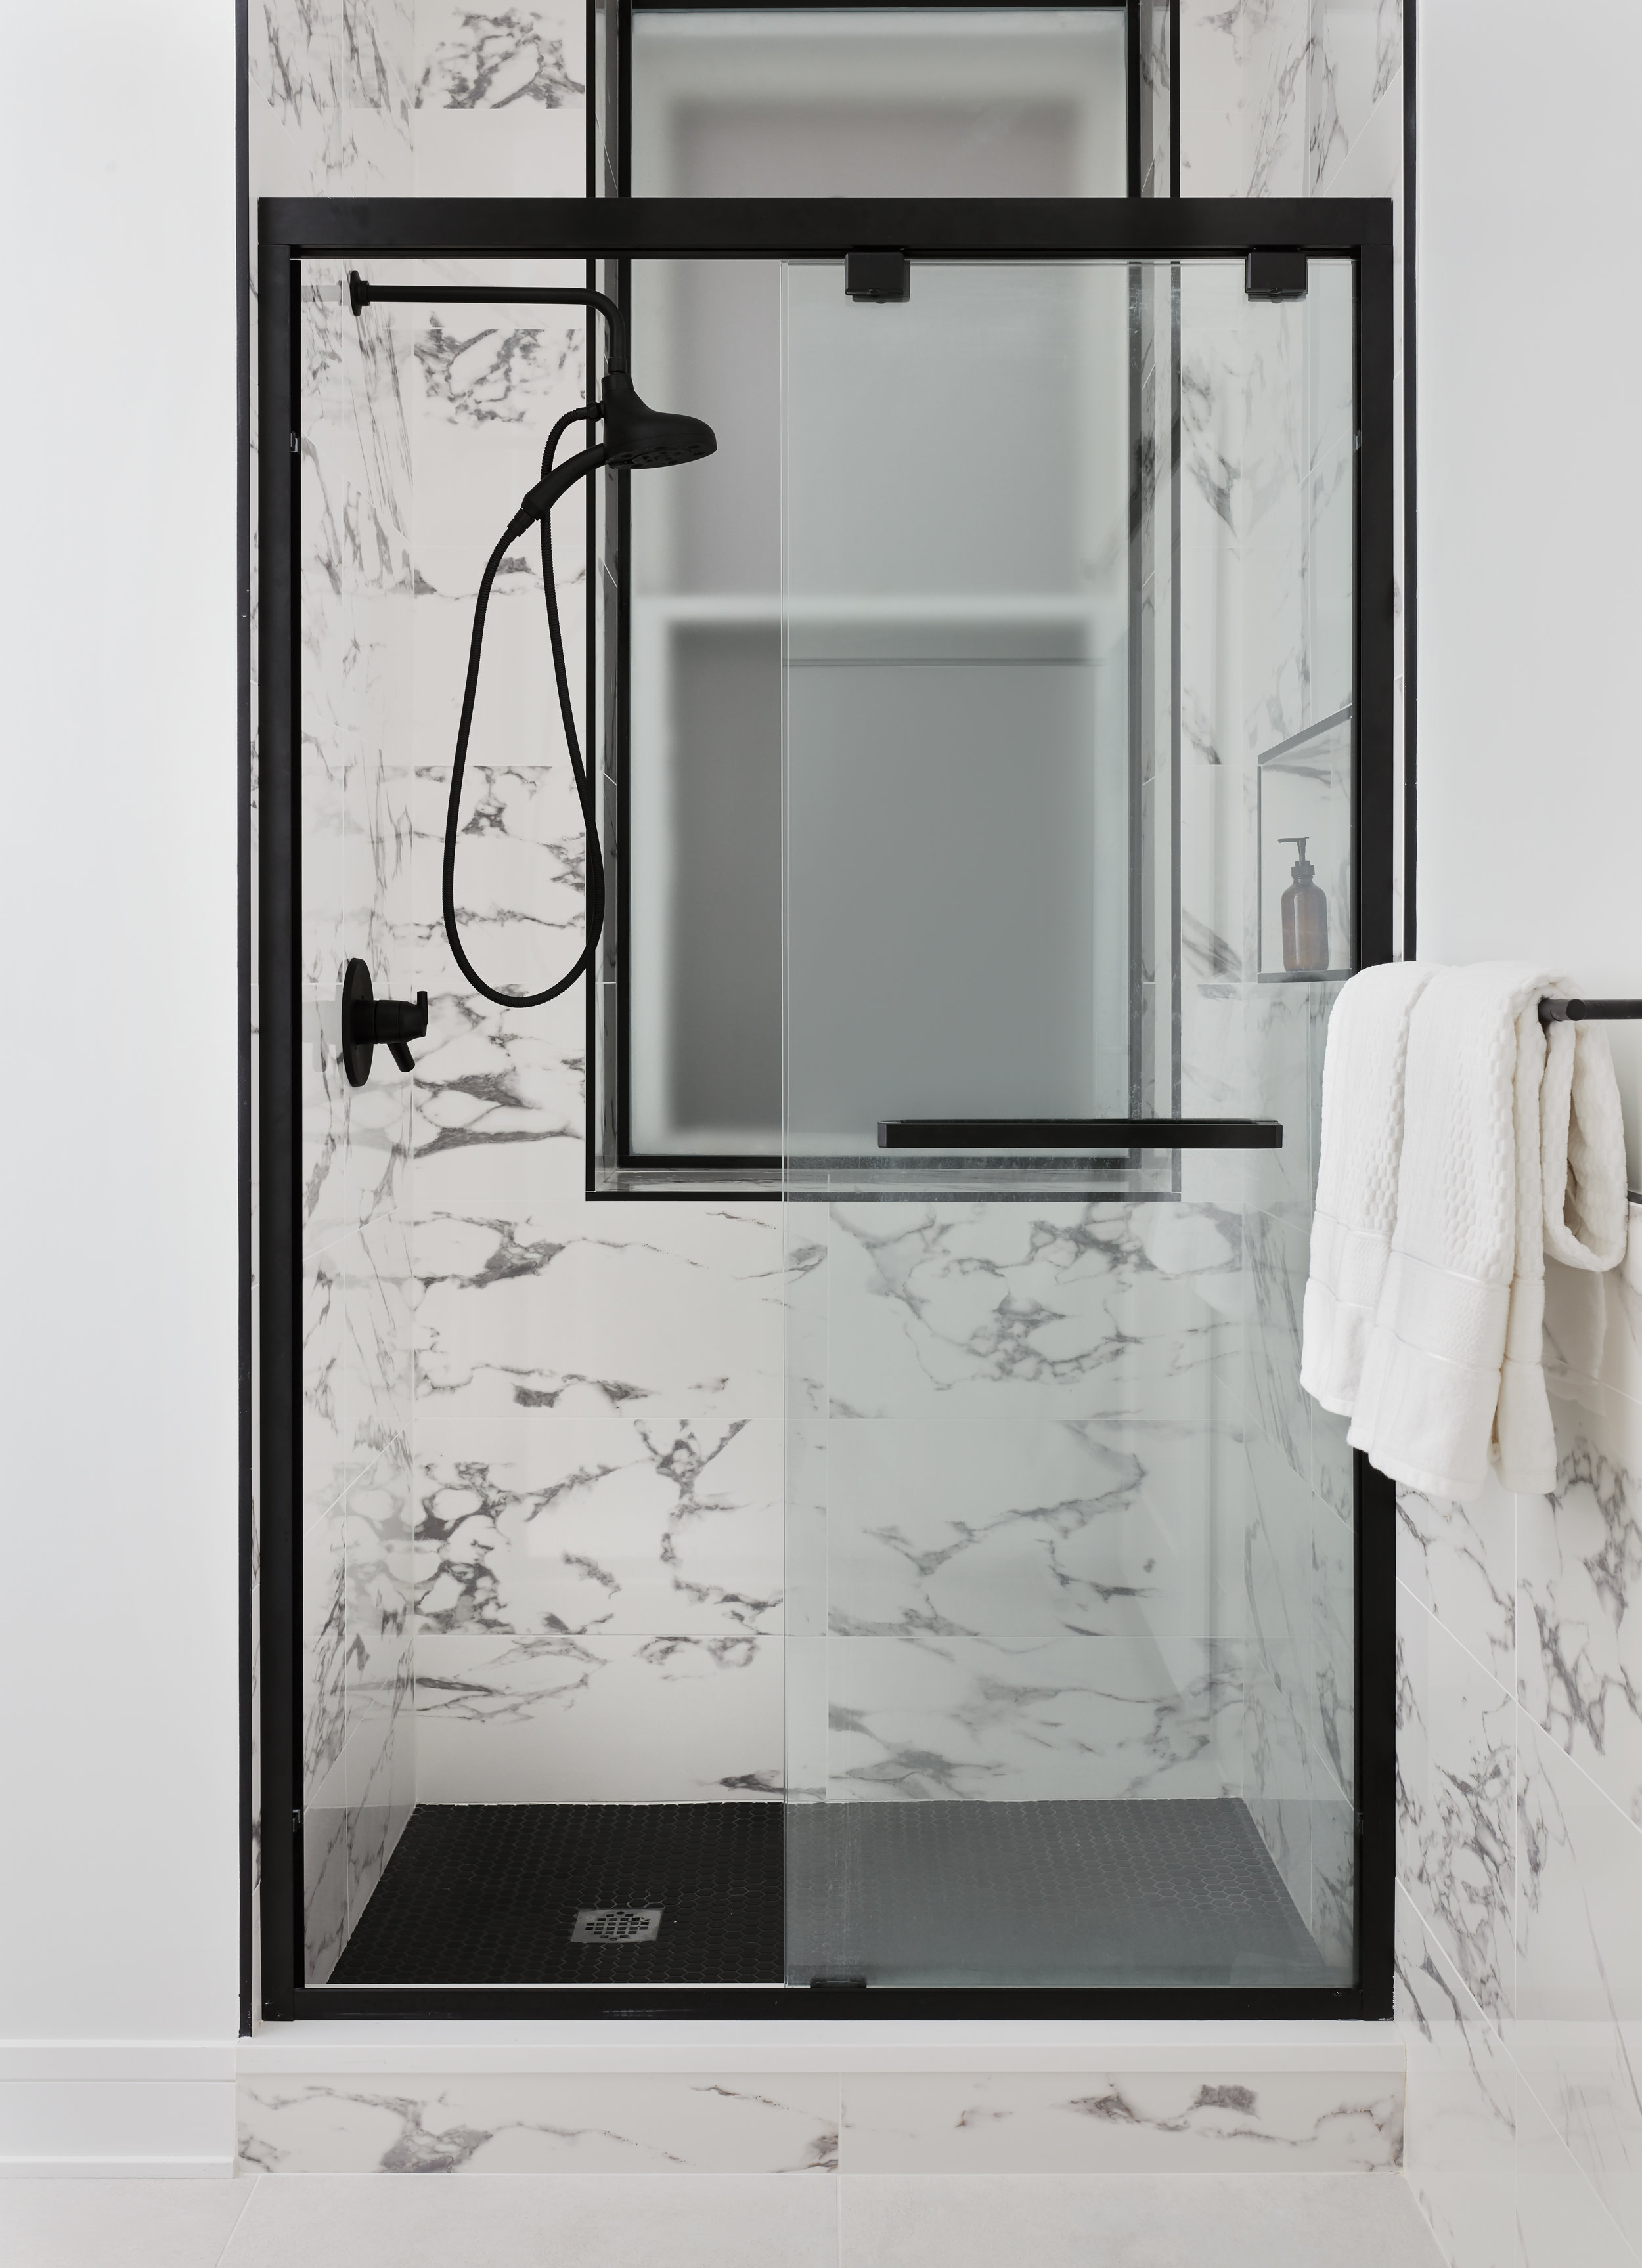 With the new layout of the bathroom, we were able to create a larger walk-in shower where the vanity originally was. We carried in marble-looking porcelain tiles with black metal accents and frosted the window for privacy without blocking natural light.